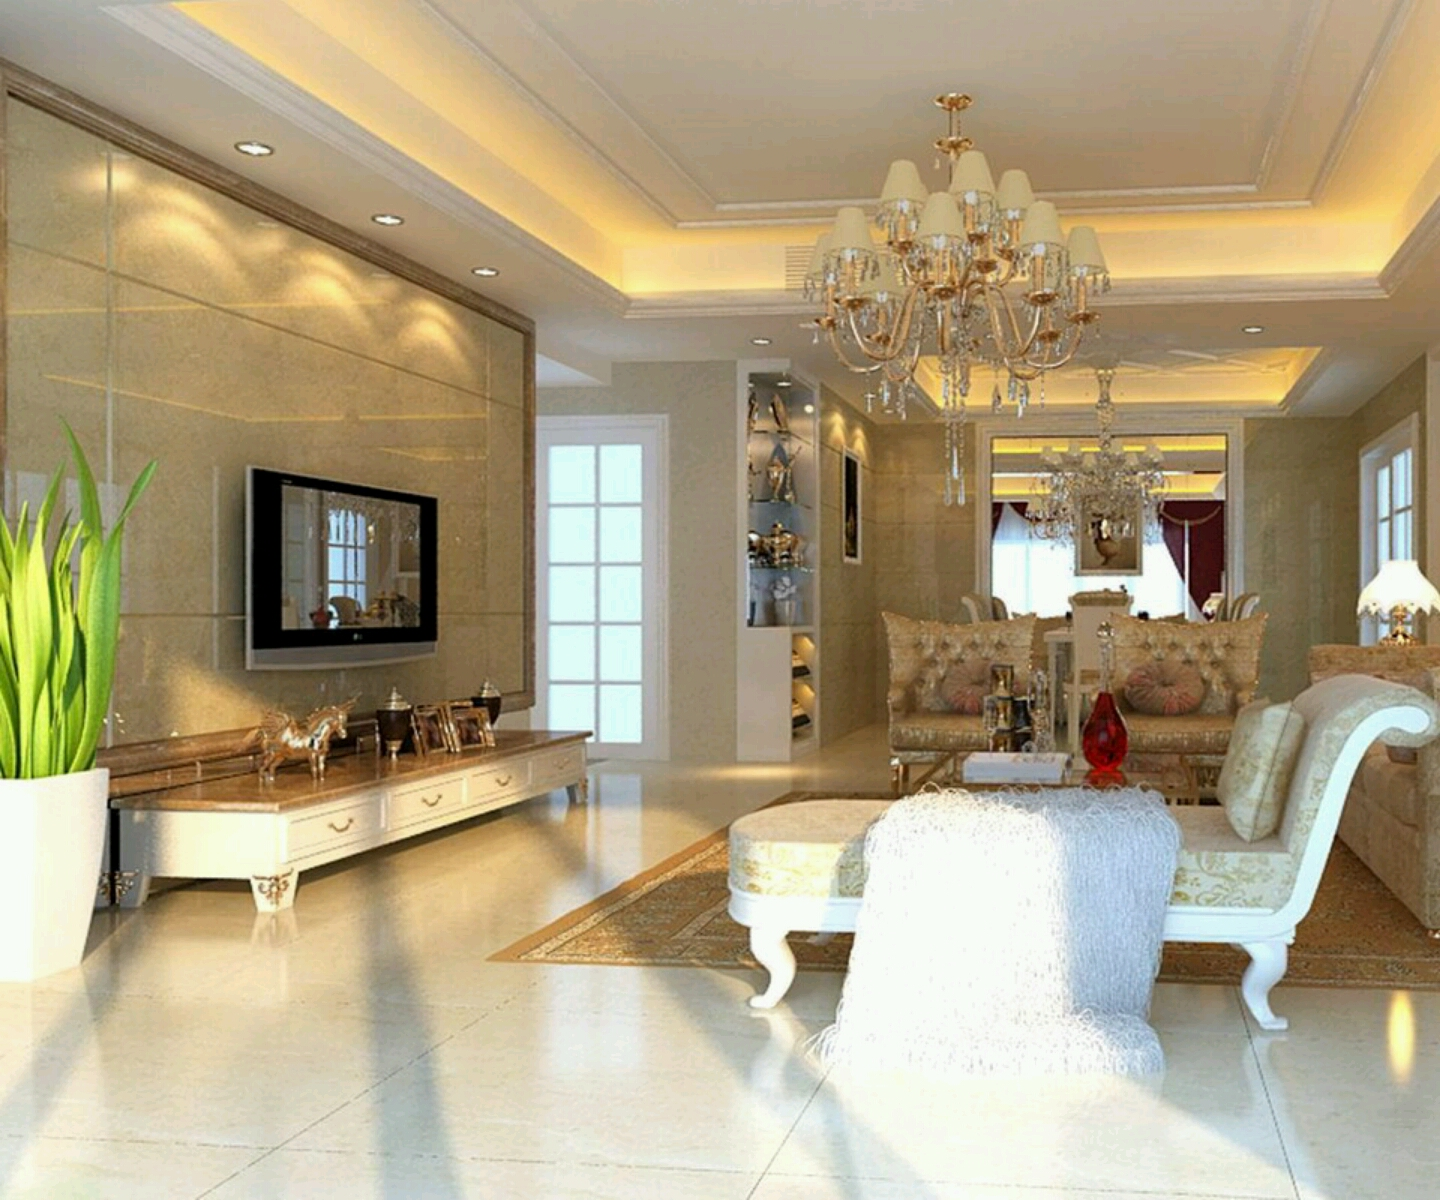 New home designs latest luxury homes interior decoration for New house interior design